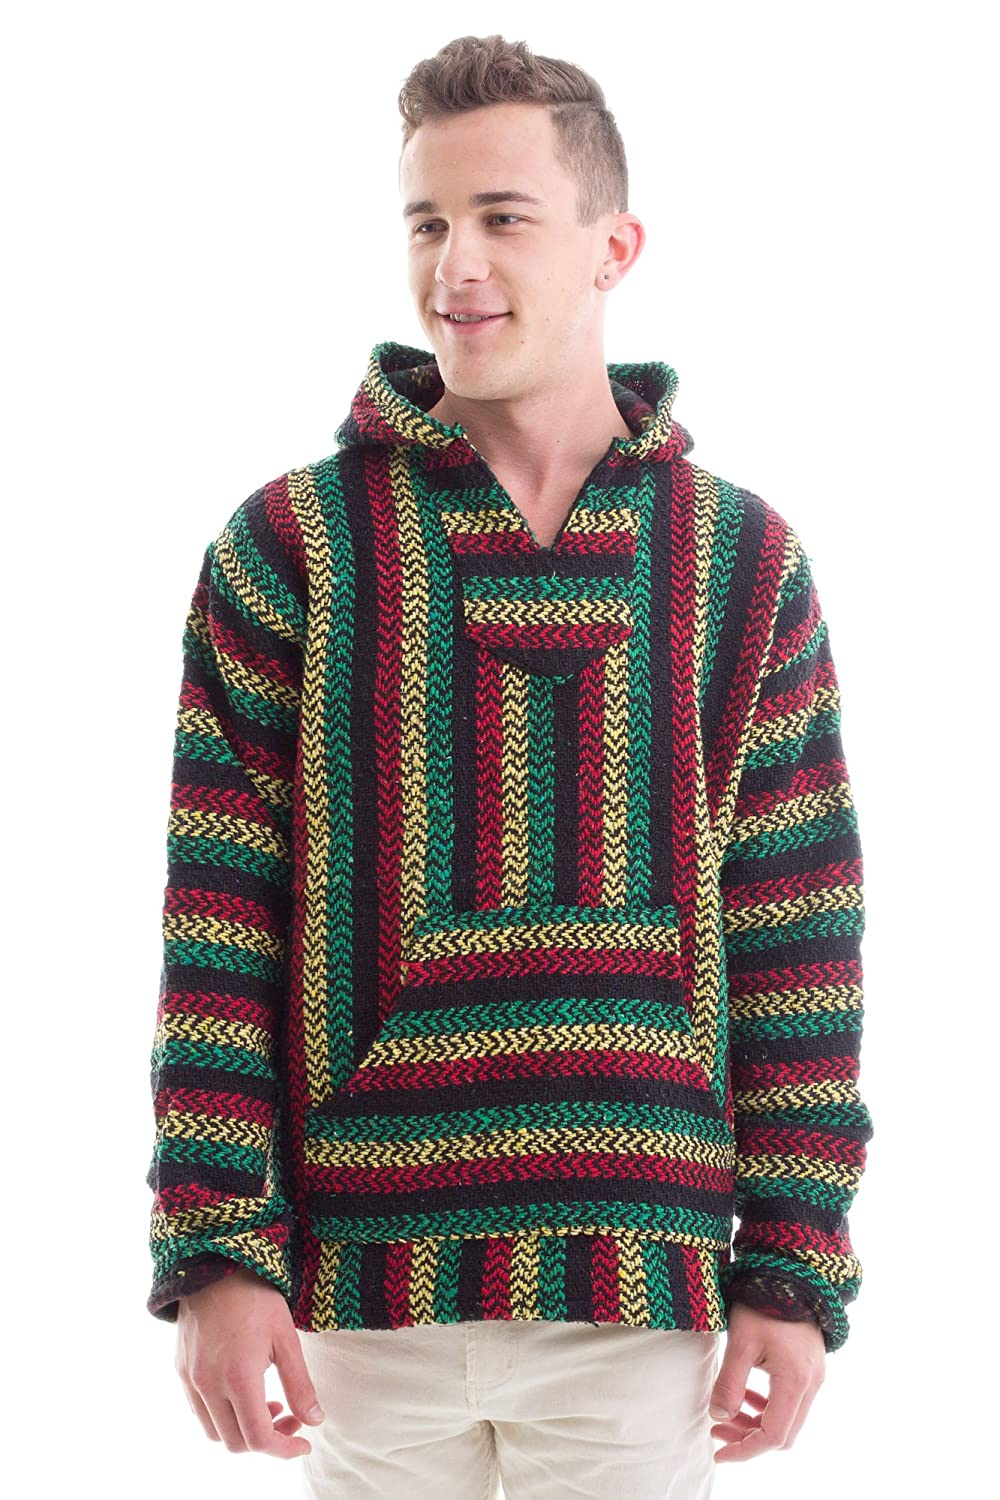 Earth Ragz Baja Joe - Premium Rasta Stripe Woven Baja Hoodie Sweatshirt Jerga Mens BS005-168347